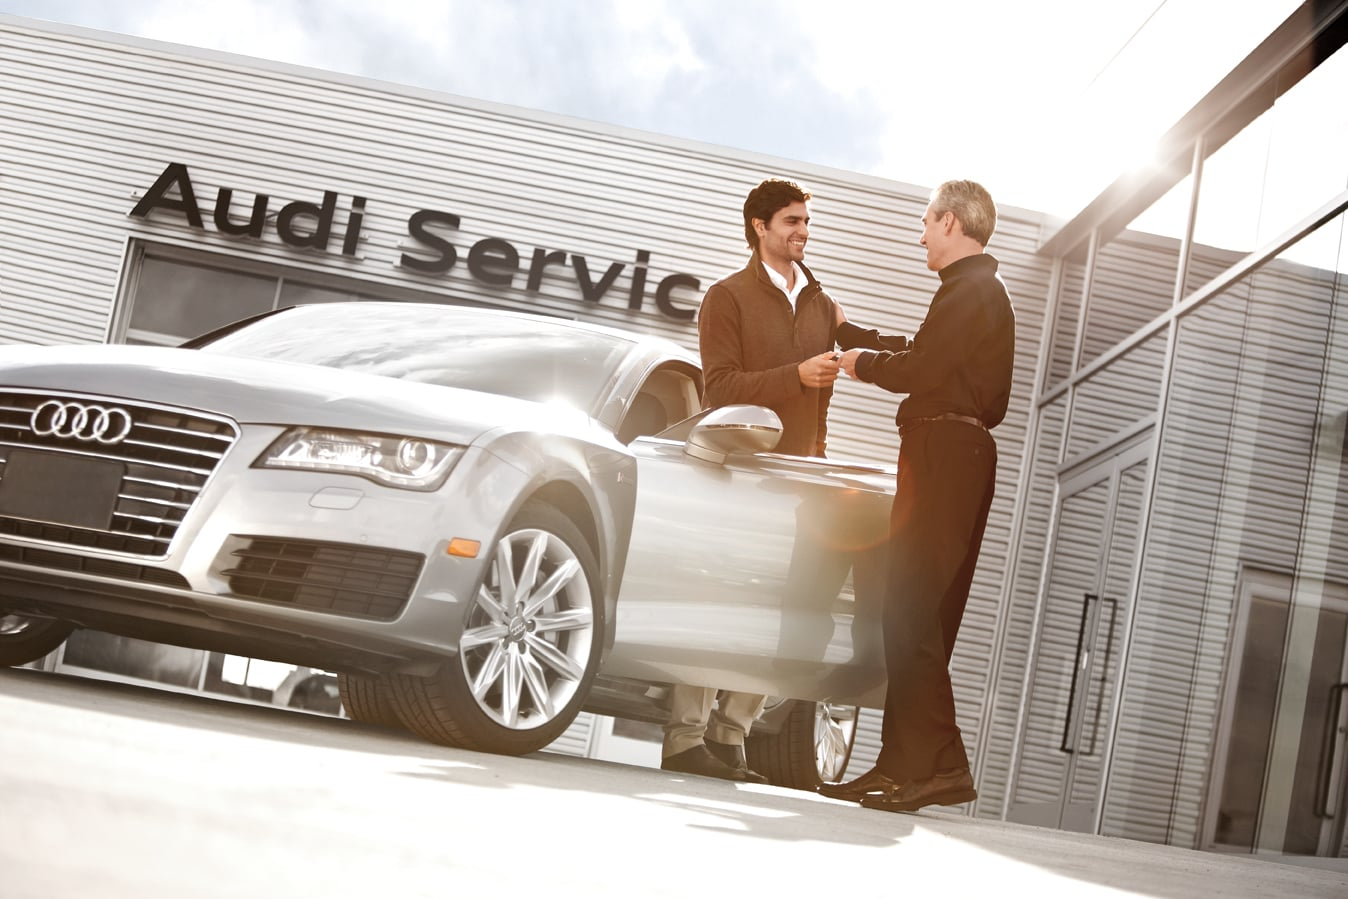 Audi Marietta Jim Ellis Audi Marietta Service Team Hits Another - Jim ellis audi marietta